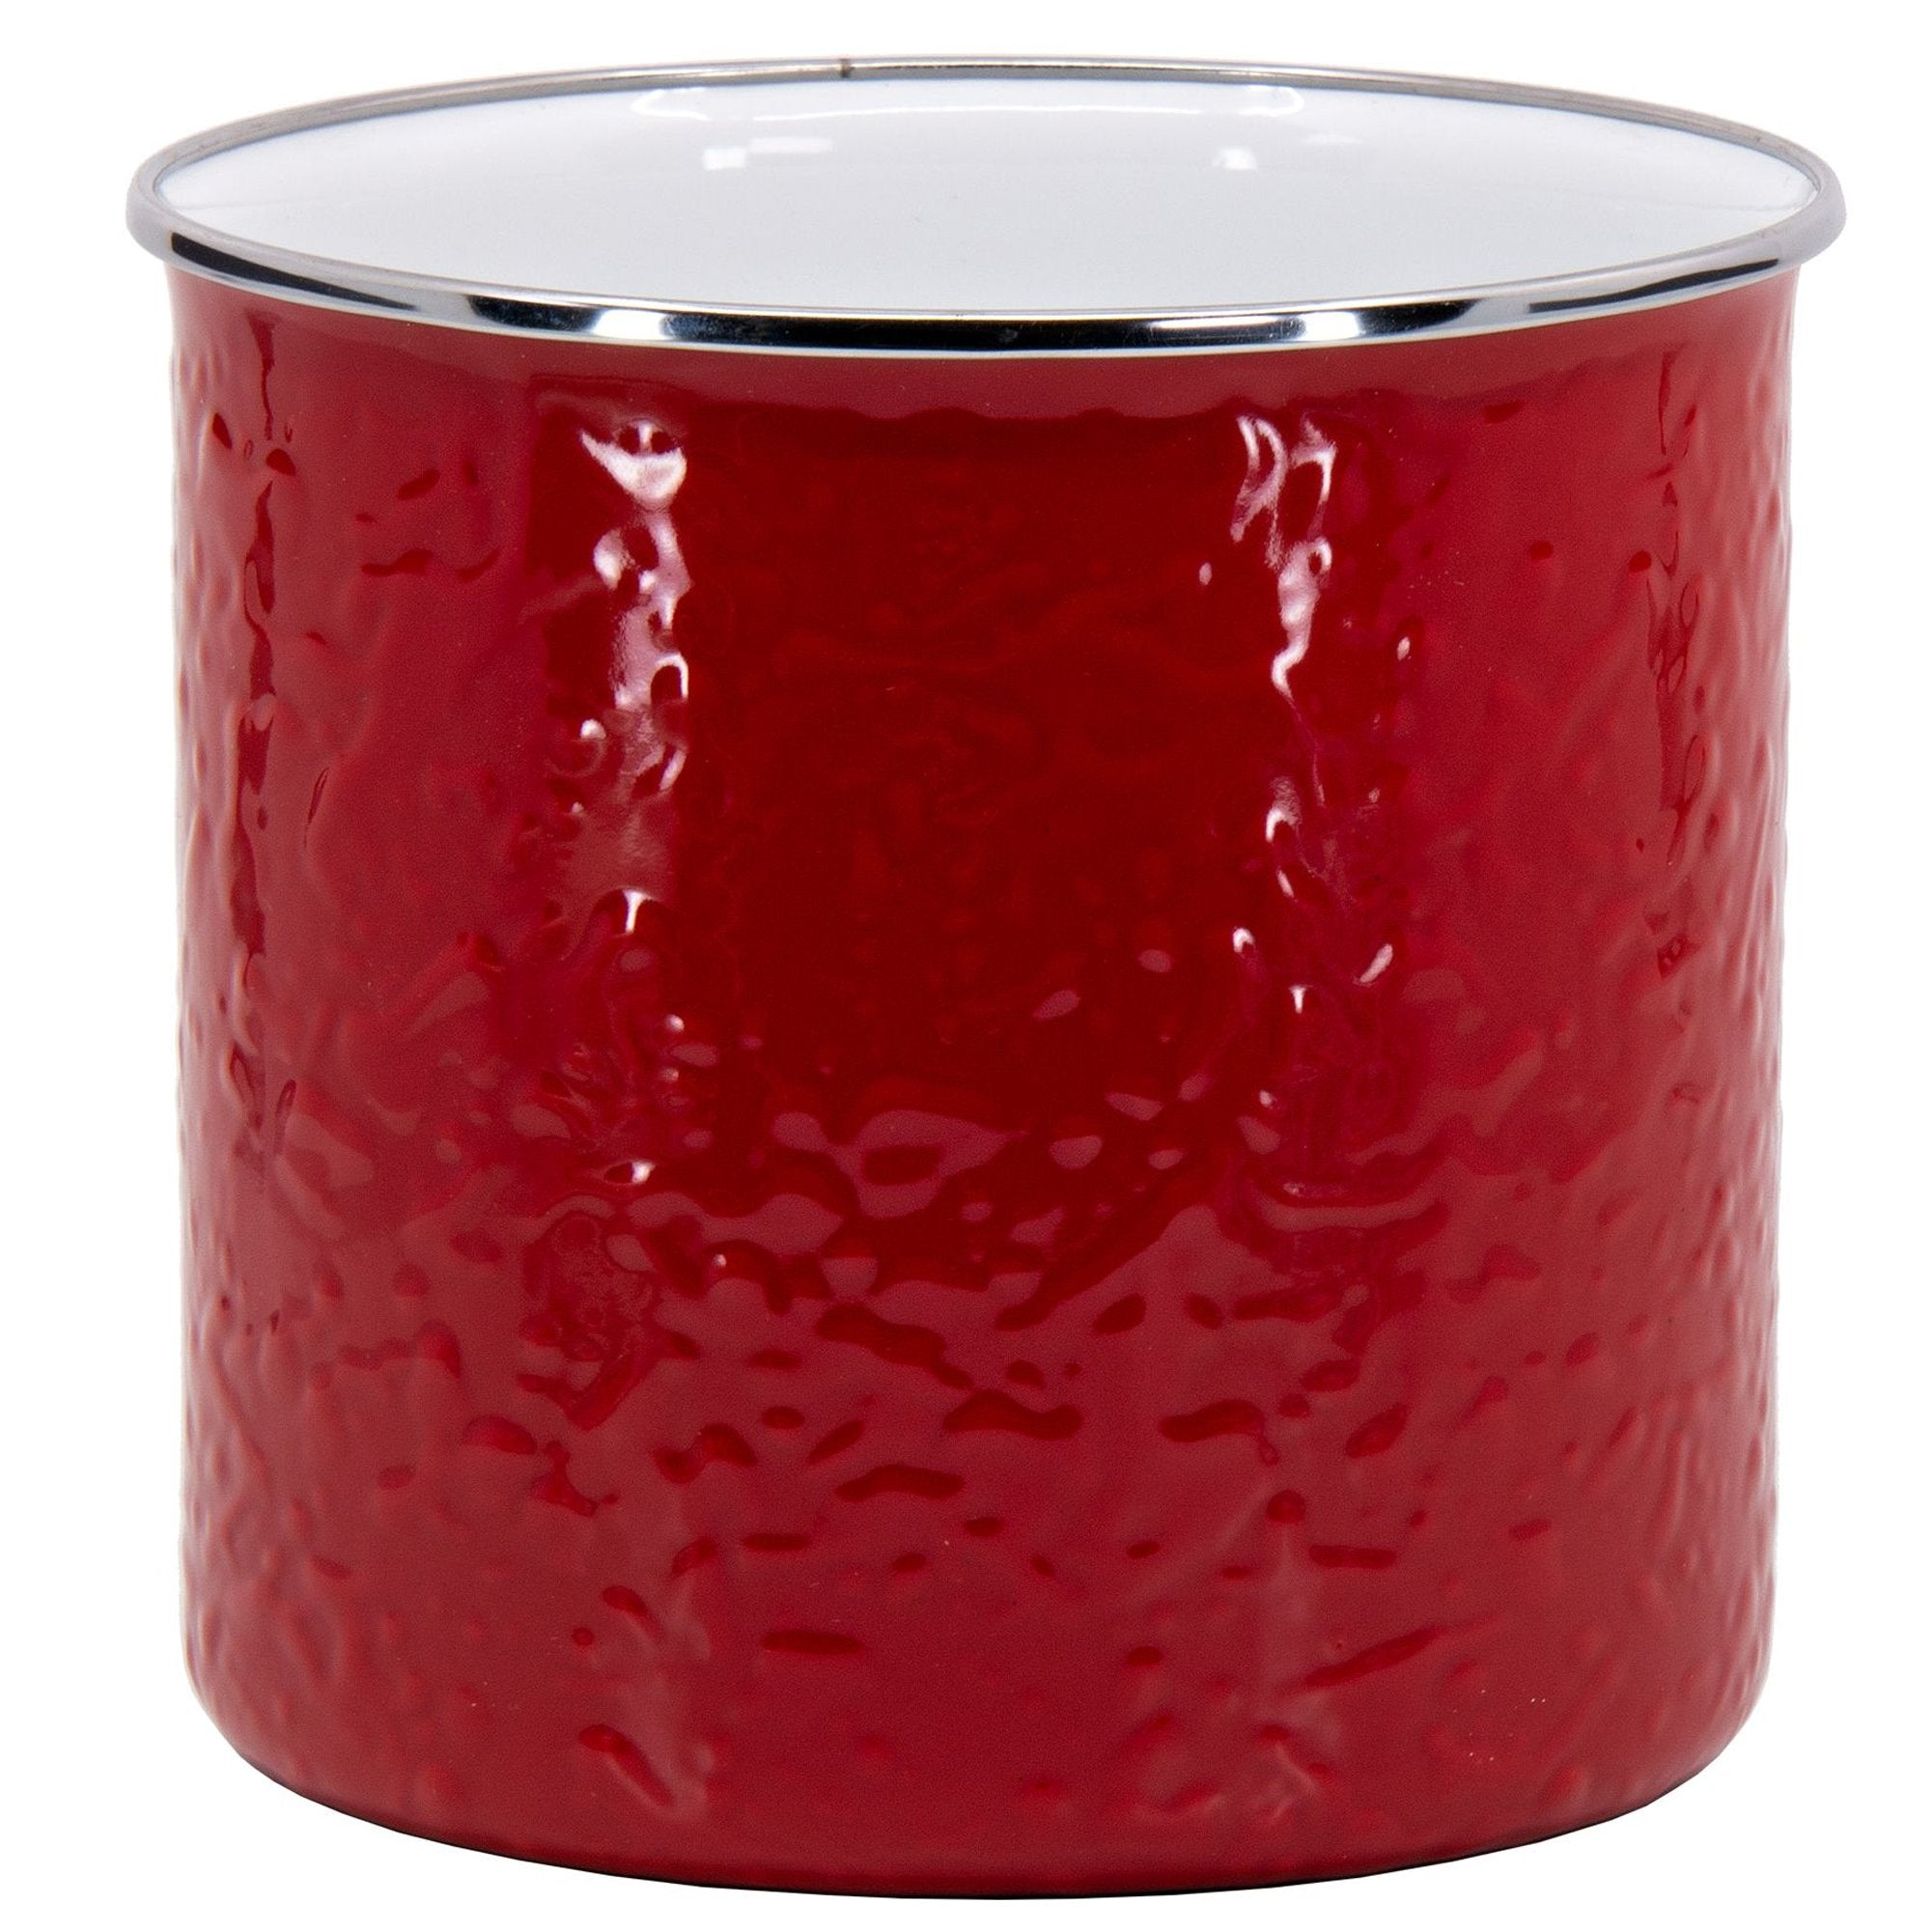 RR34 - Red on Red - Utensil Holder